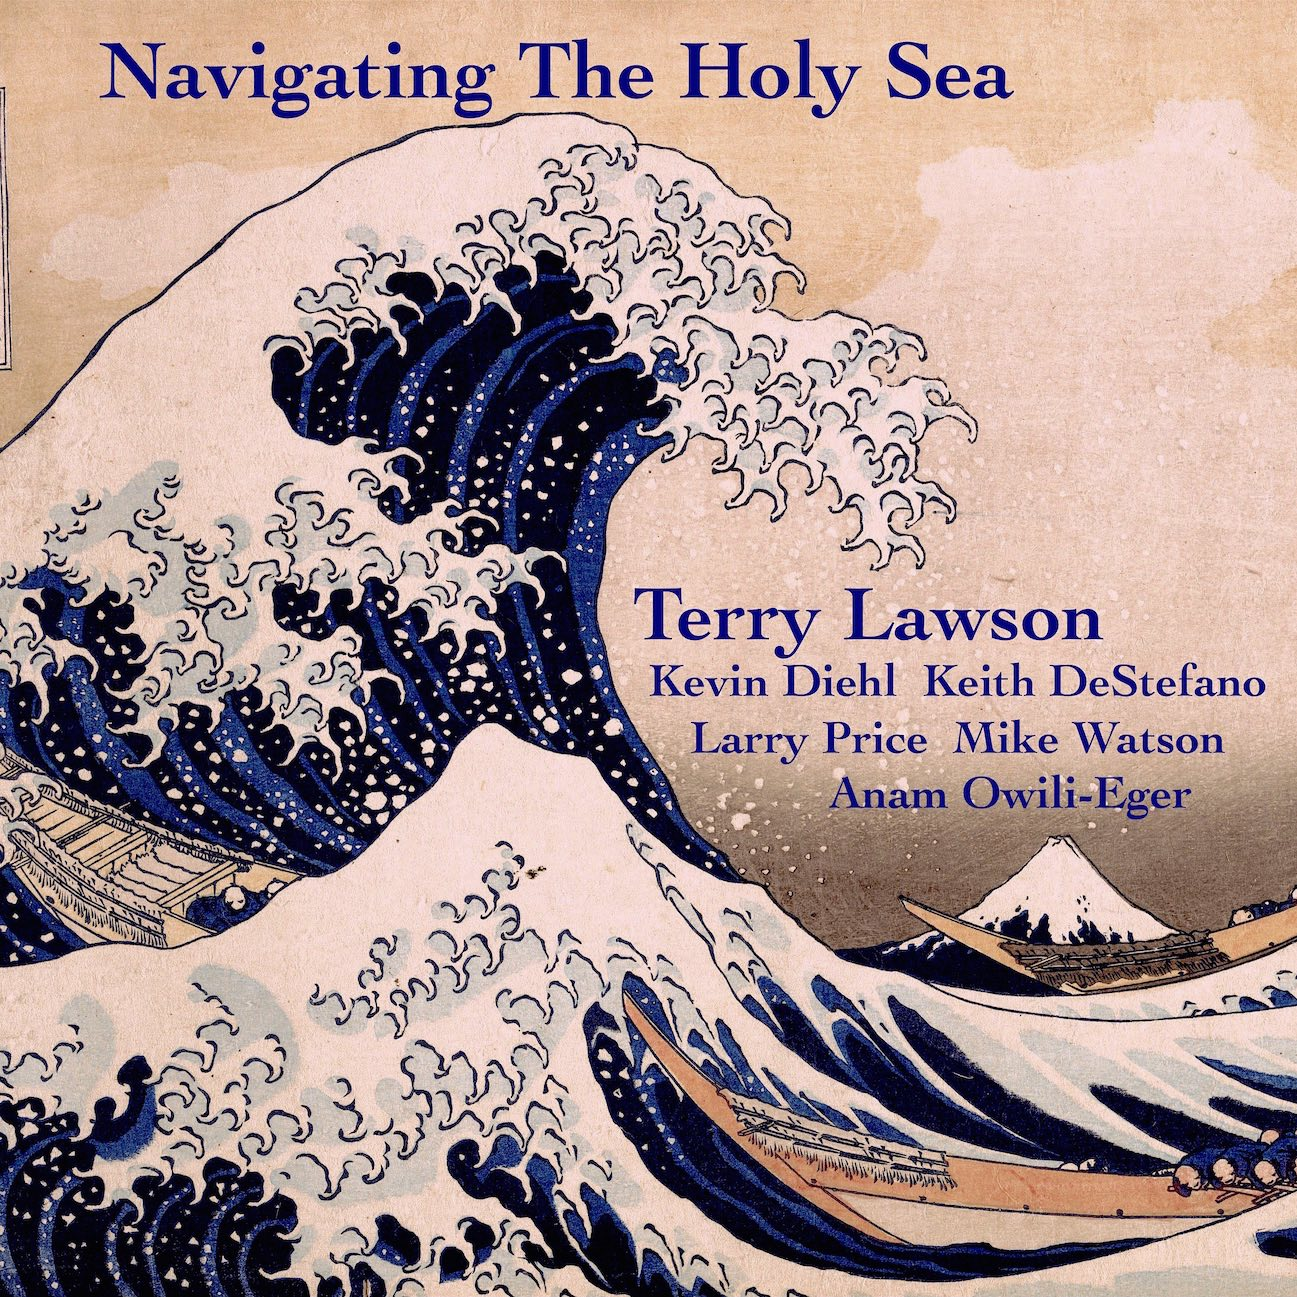 Navigating The Holy Sea